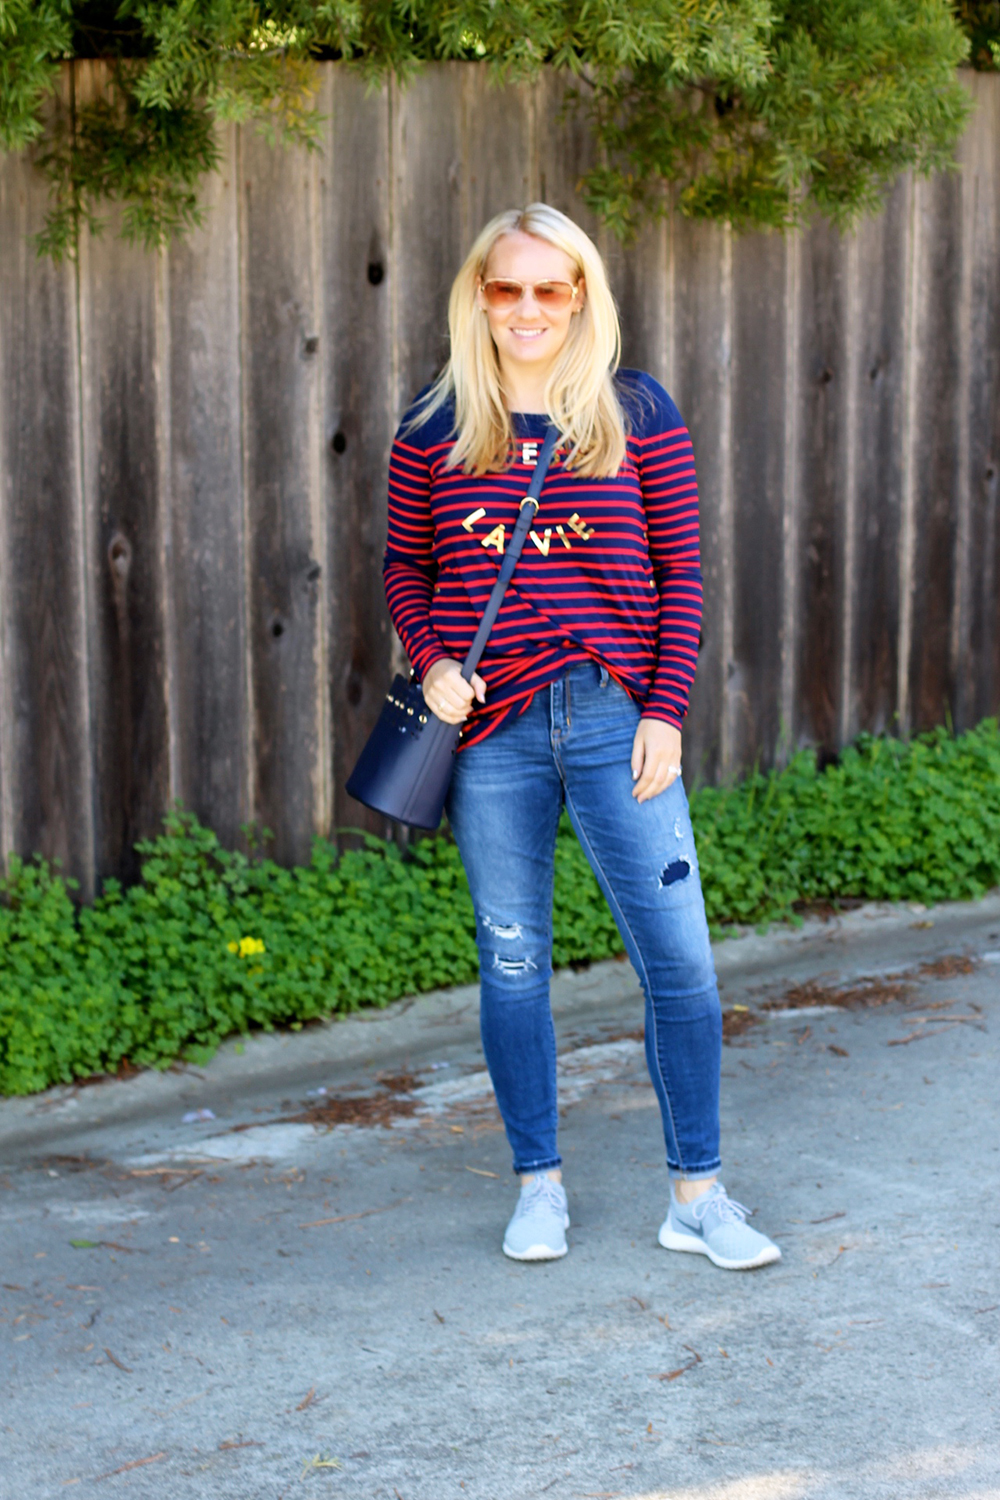 C'est La Vie-Everyday Mom Style-Mom Uniform-Nursing Top-Outfit Inspiration-Bay Area Fashion Blogger-Have Need Want 5